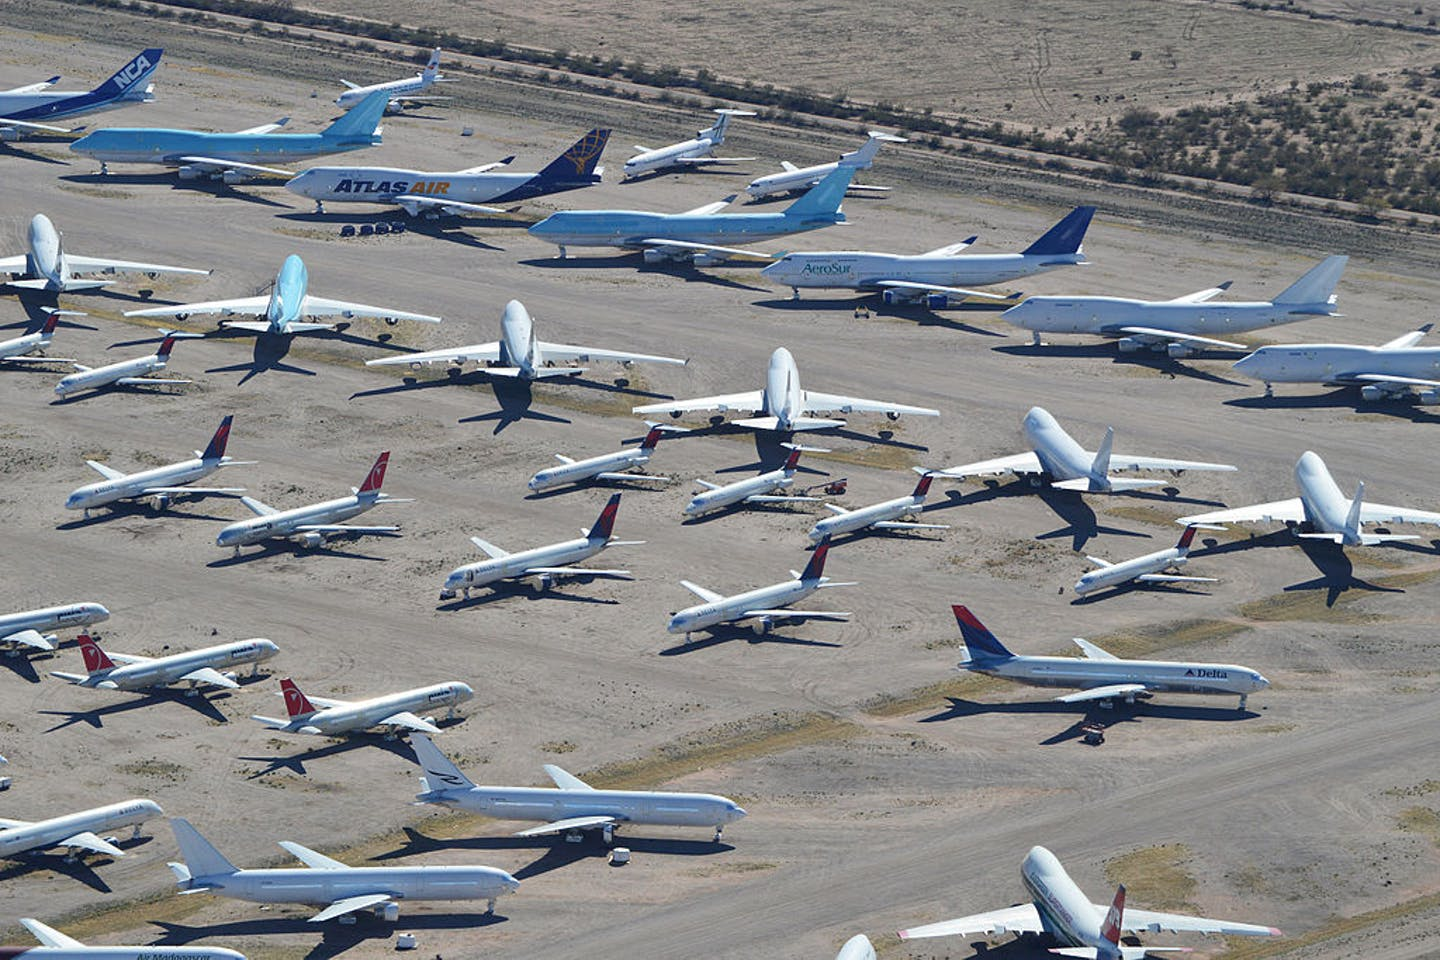 airplanes grounded